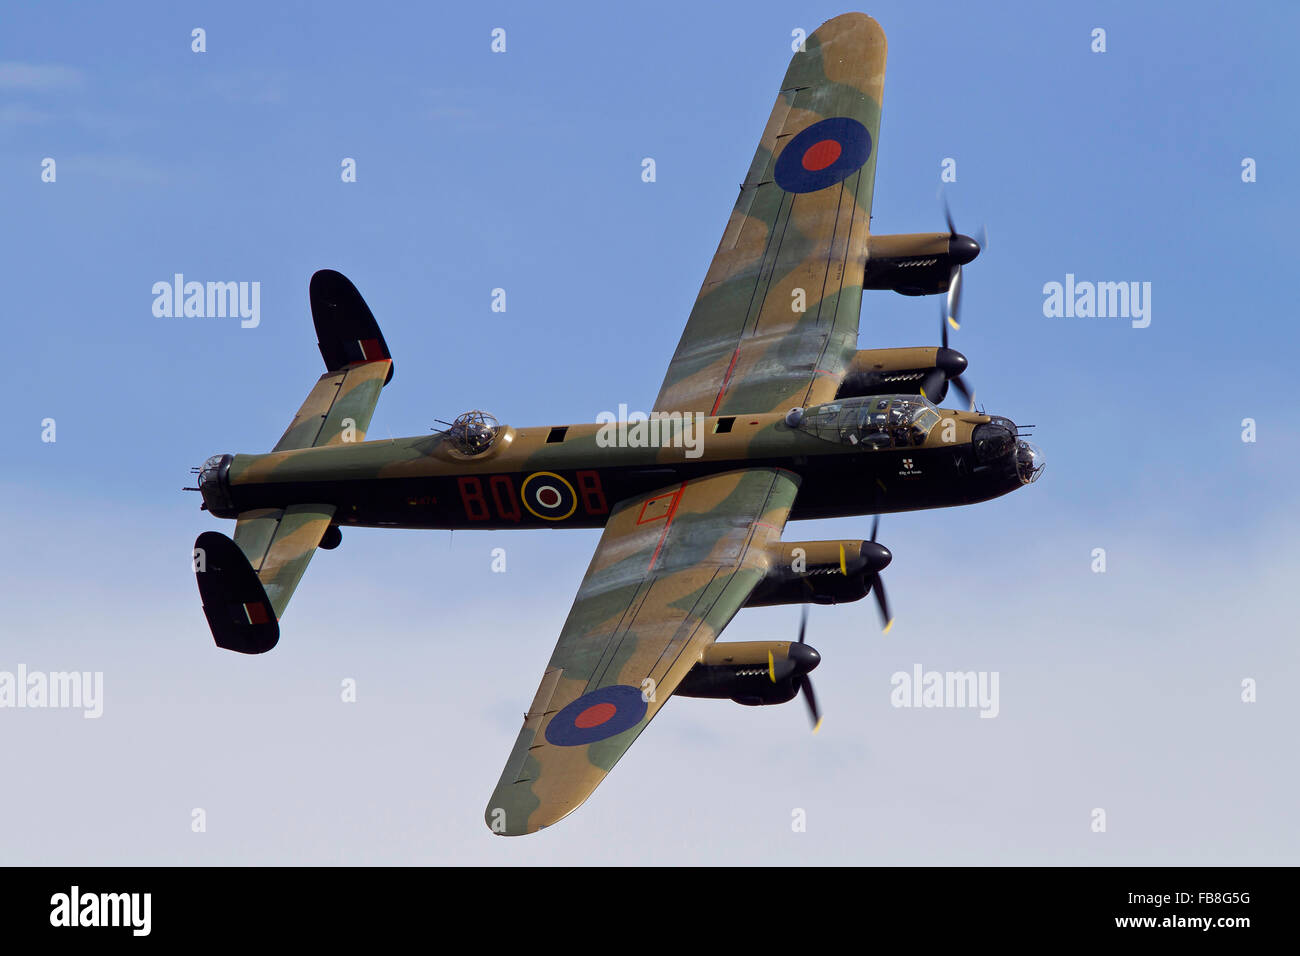 Avro Lancaster bomber in flight - Stock Image